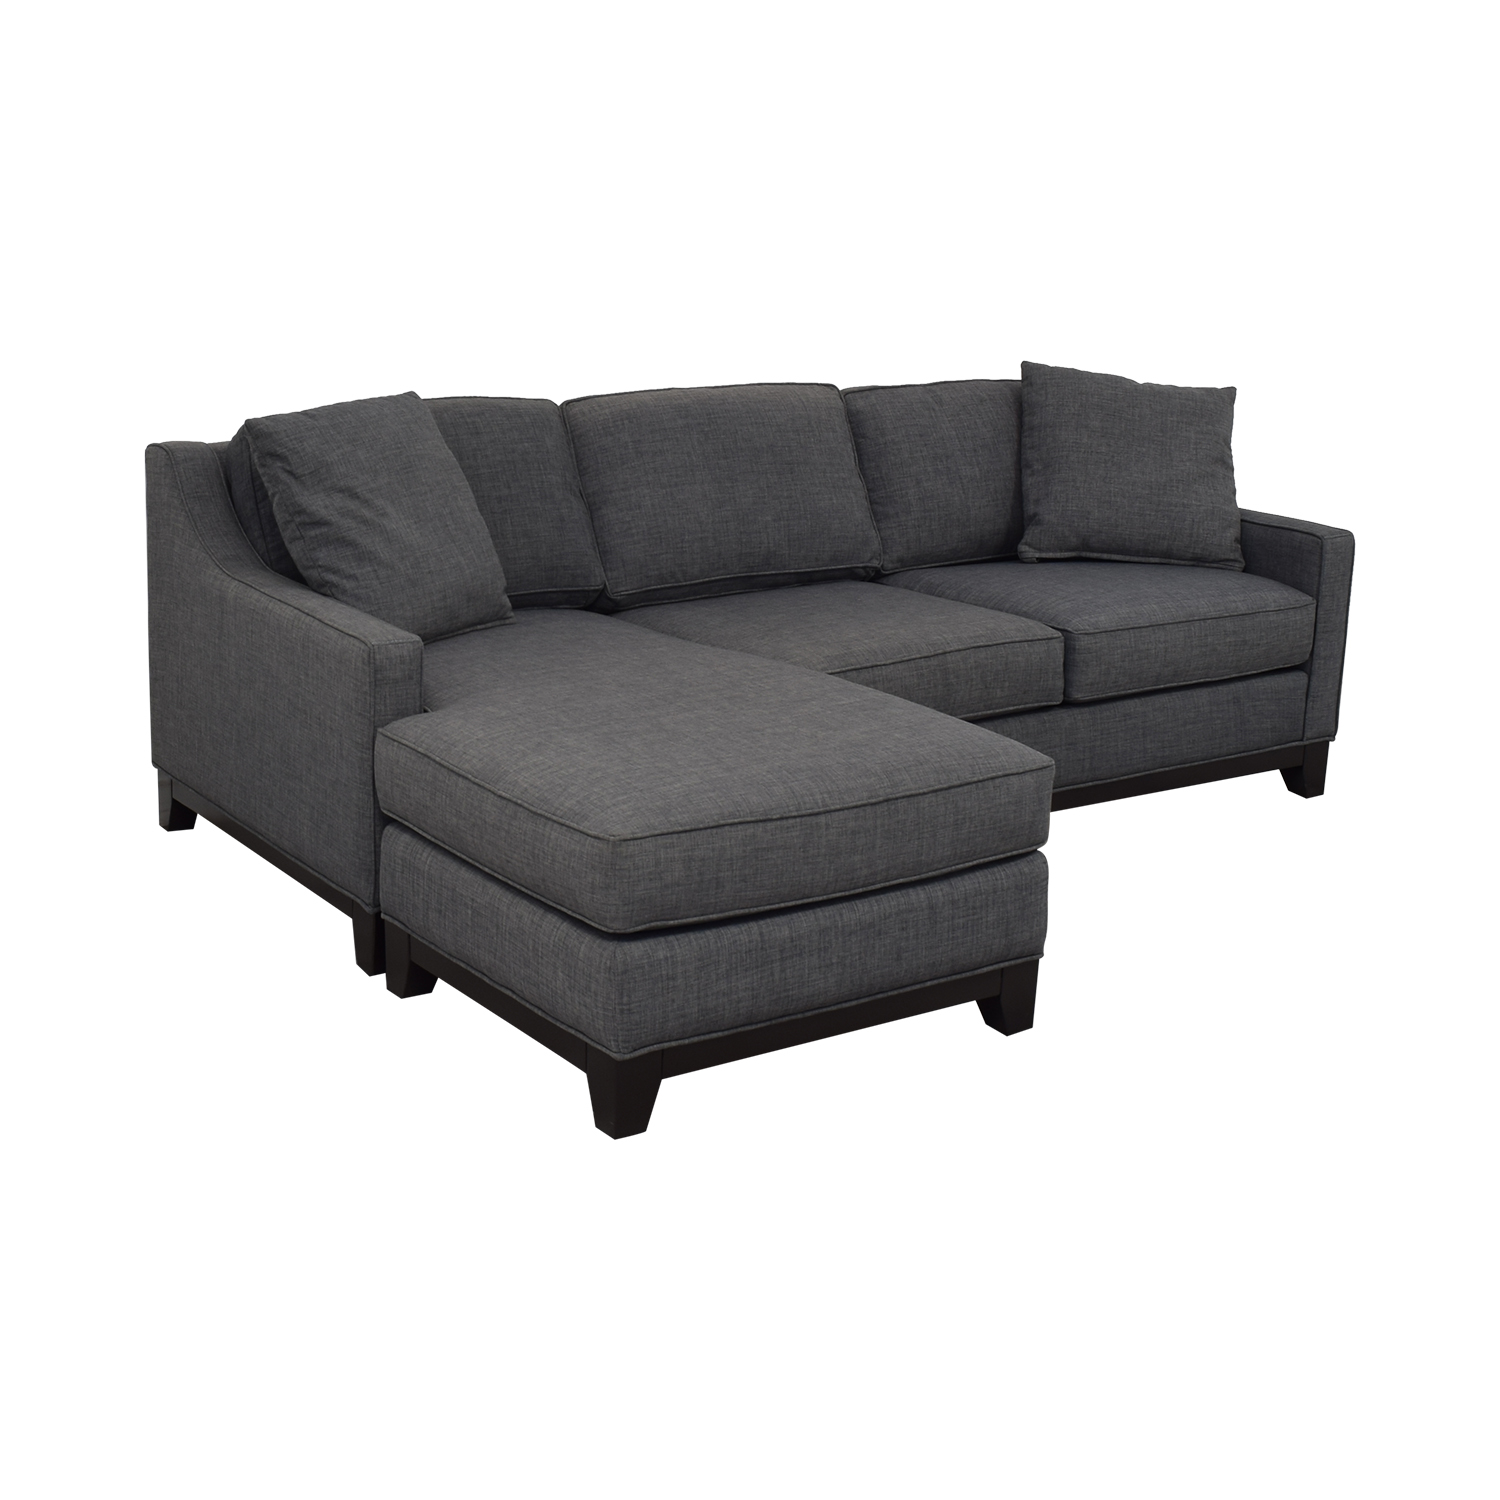 Macy's Macy's Keegan Fabric Reversible Chaise Sectional Sofa dark grey